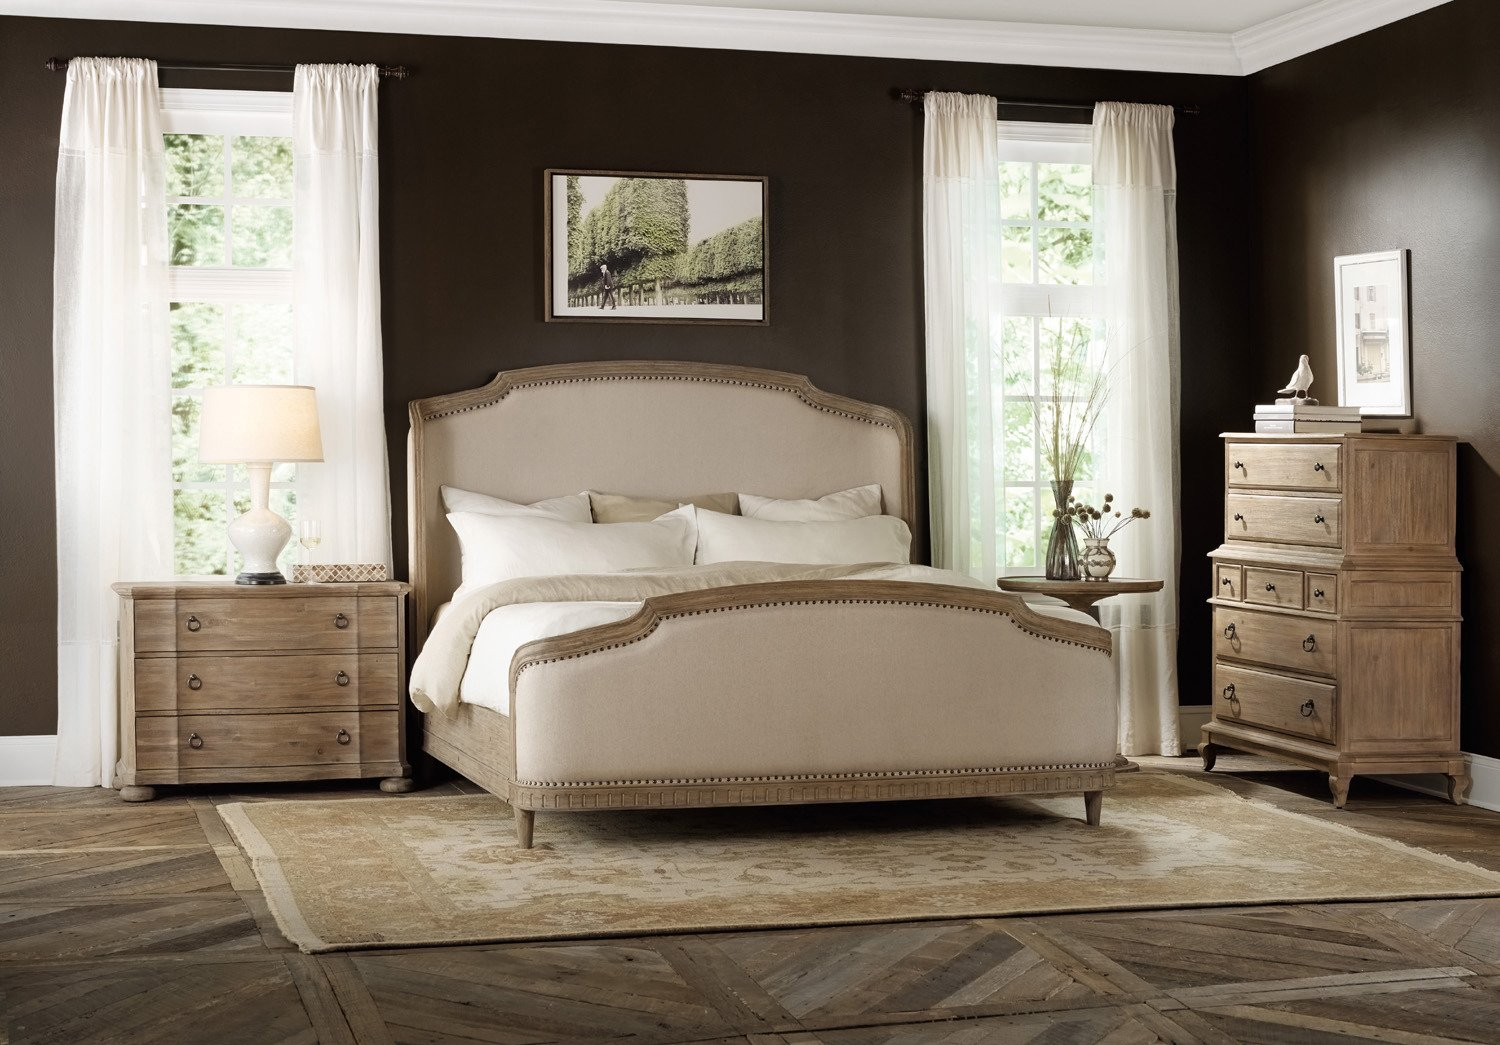 hooker bedroom furniture. Amazon com  Hooker Furniture Corsica King Upholstered Shelter Bed in Light Natural Kitchen Dining